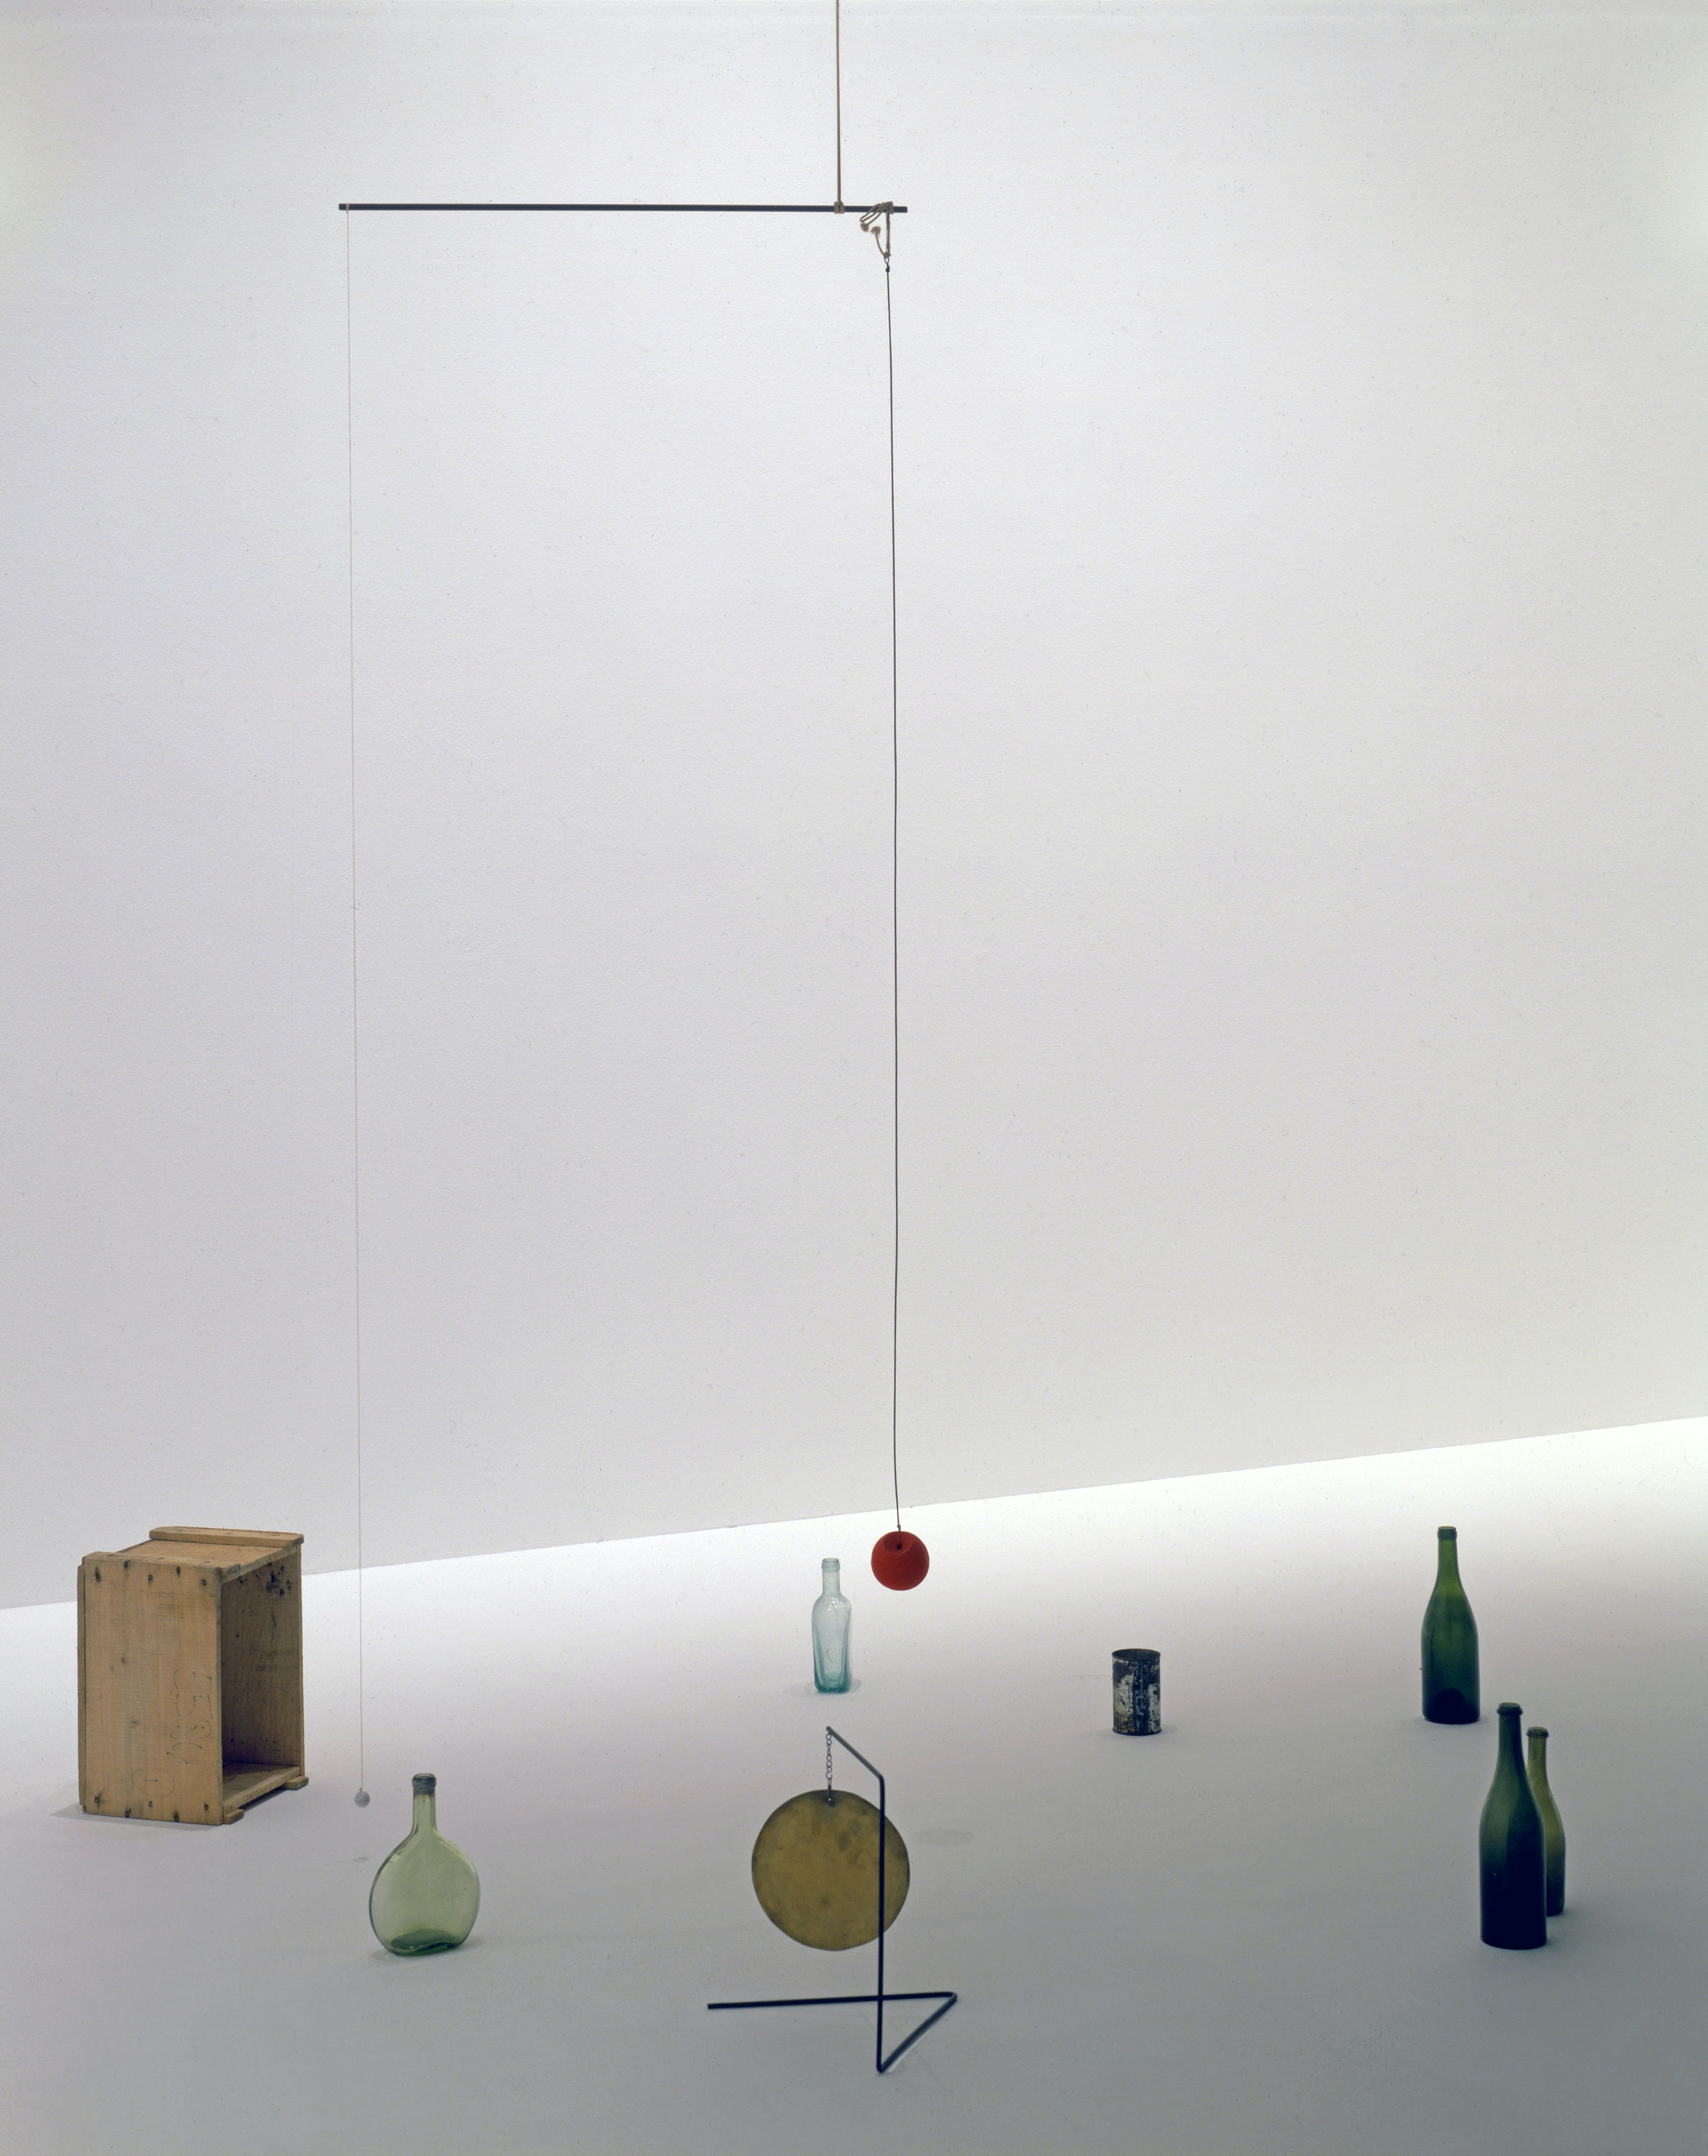 Alexander Calder, <em>Small Sphere and Heavy Sphere</em>, 1932/1933. Cast iron, rod, wire, wood, cord, thread, paint, and impedimenta, dimensions variable. © 2019 Calder Foundation, New York /Artists Rights Society (ARS), New York. Photo: Calder Foundation, New York / Art Resource, New York.